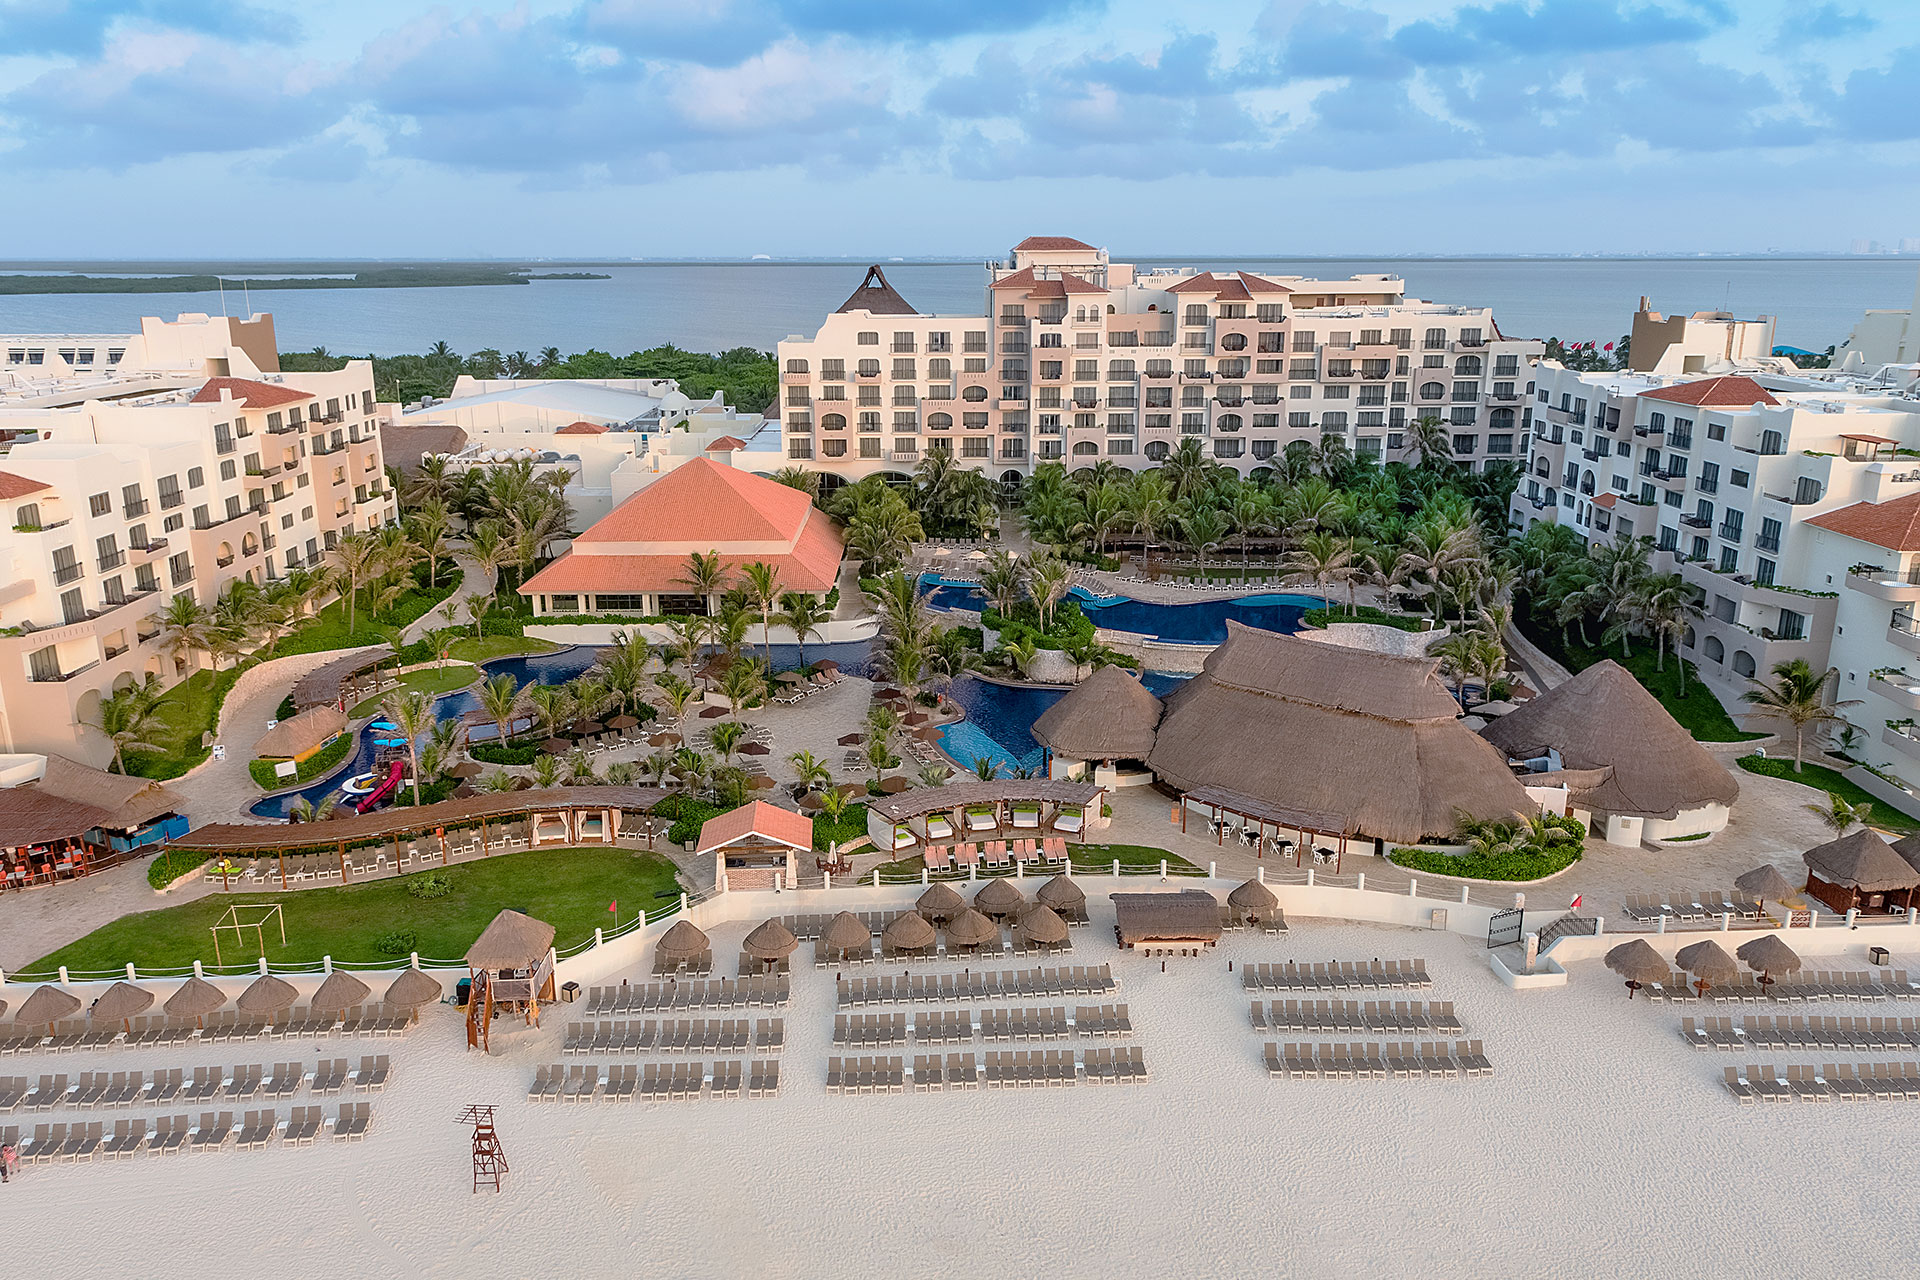 Aerial View of Grand Fiesta Americana Condesa Cancun - Cancun, MX - All Inclusive Resort